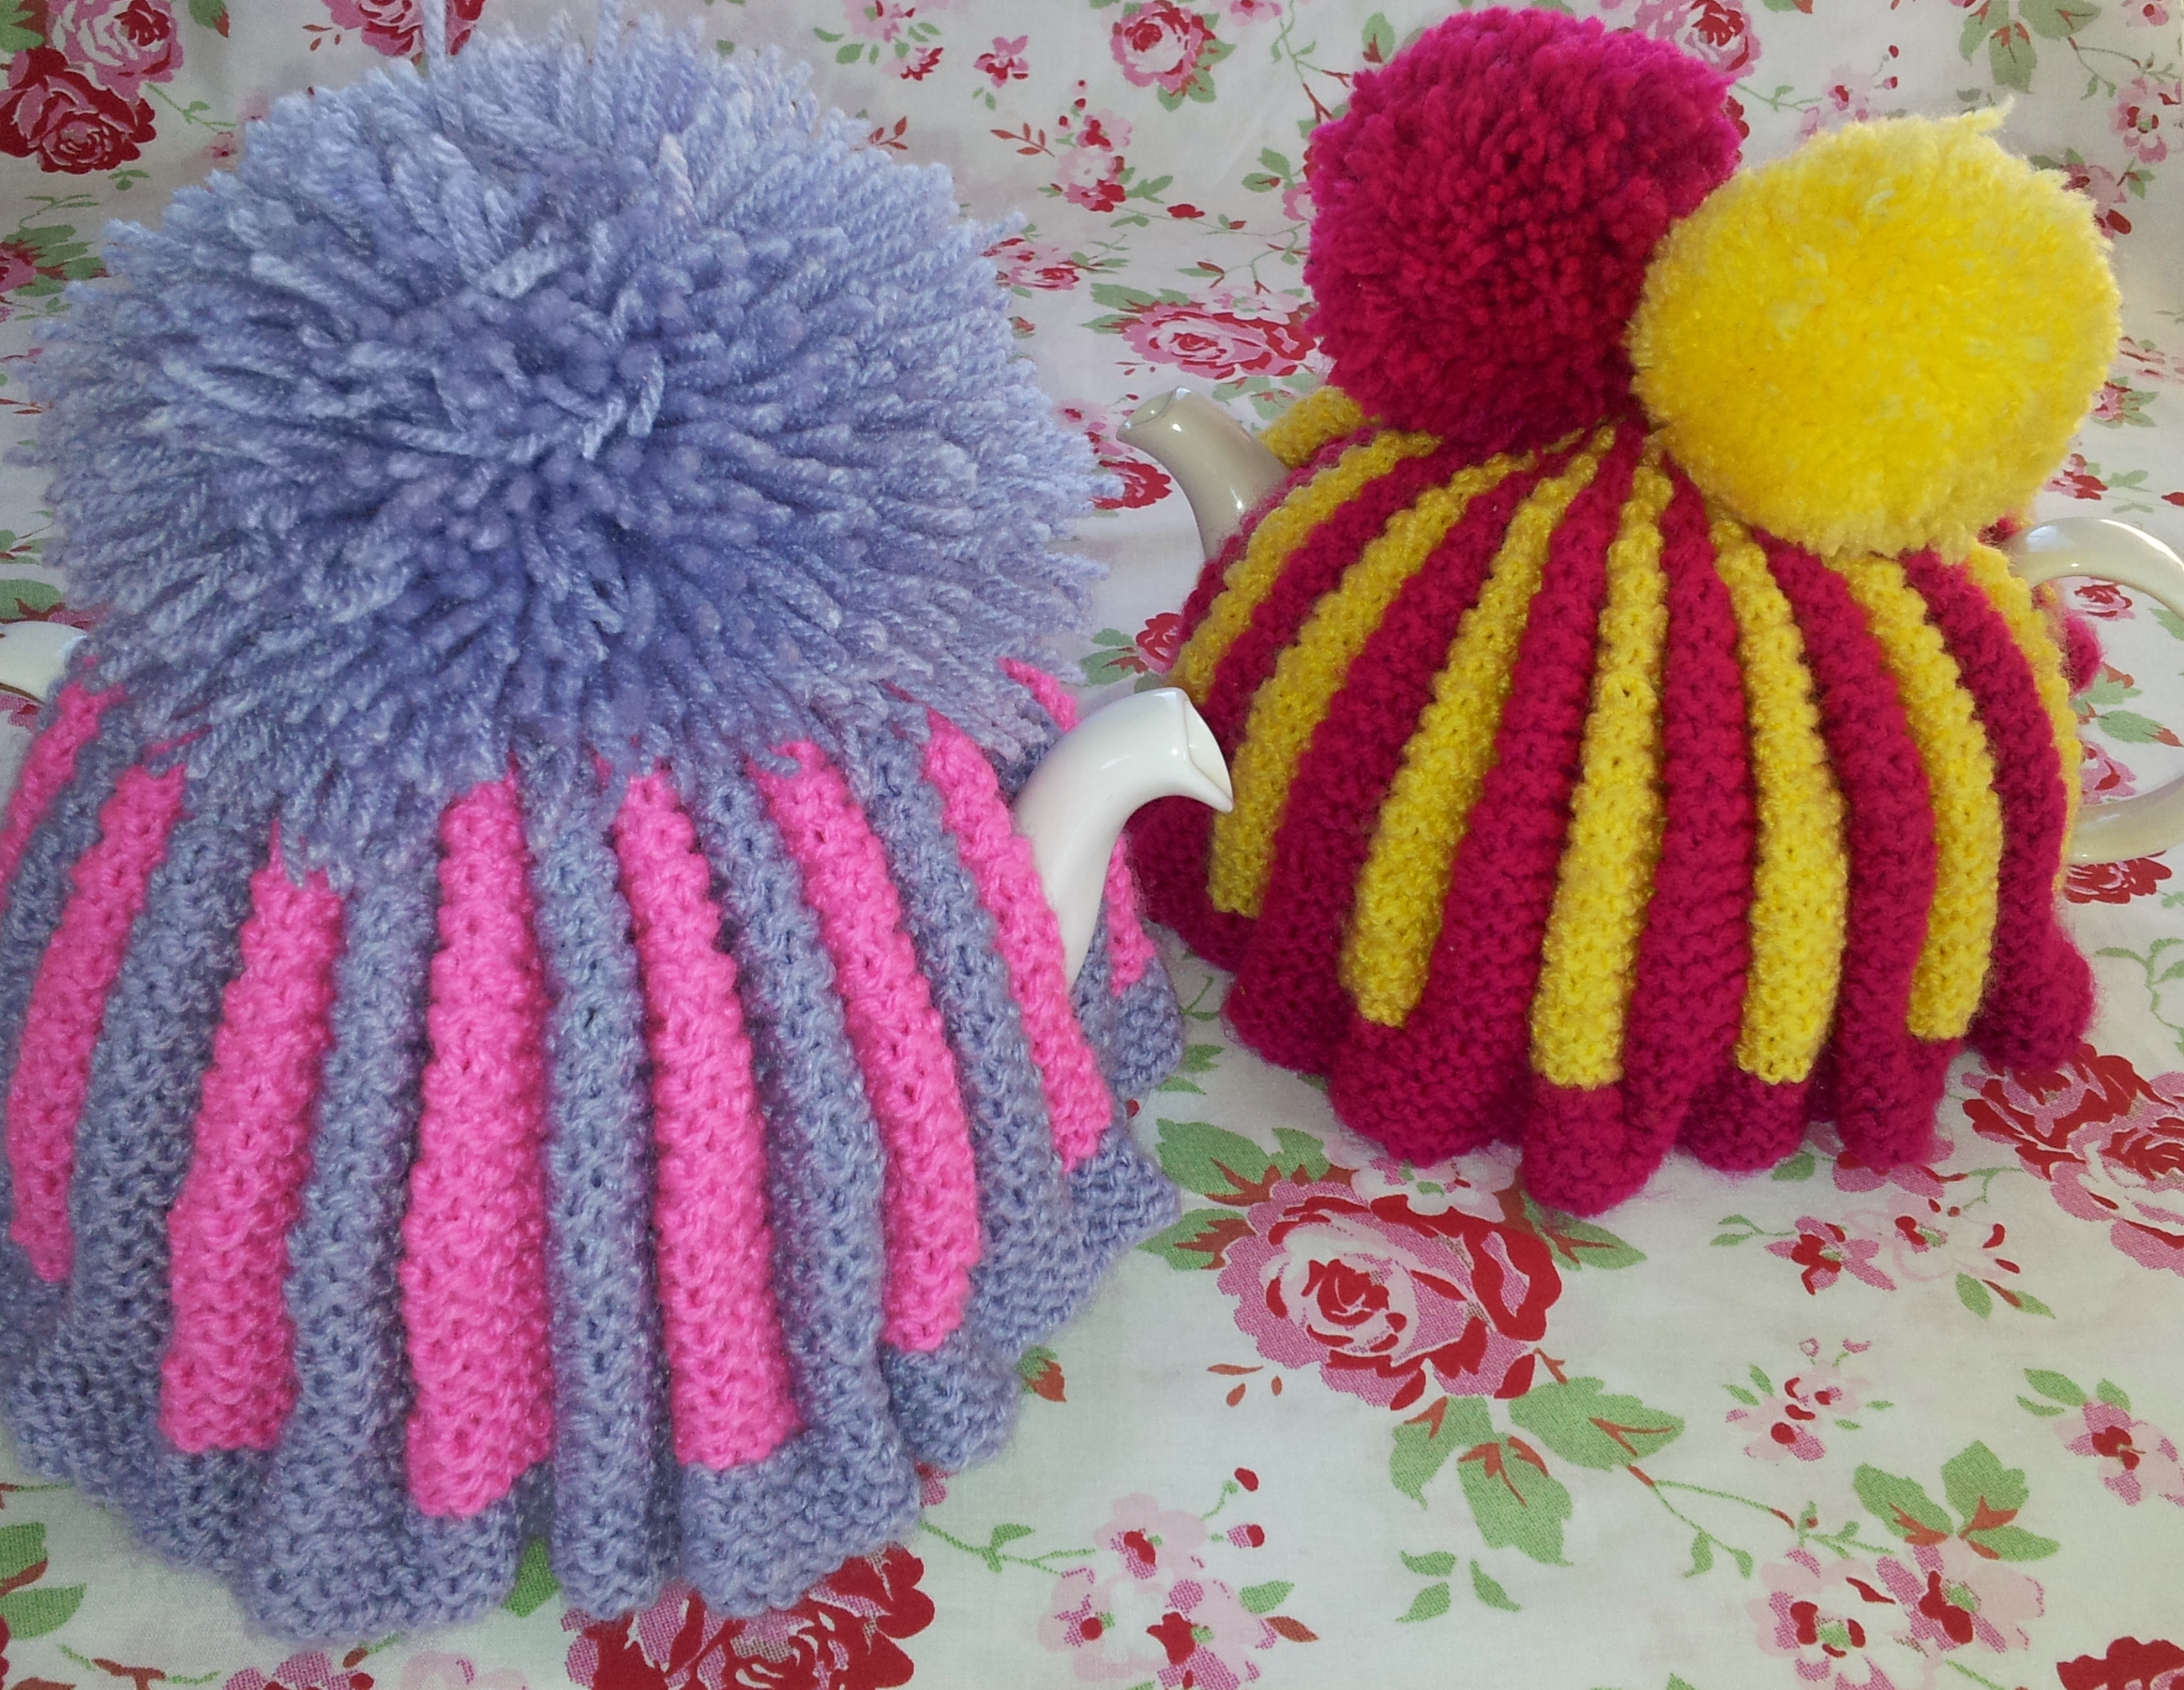 After hearing about a charity tea cosy knit for Macmillan s, I have ...